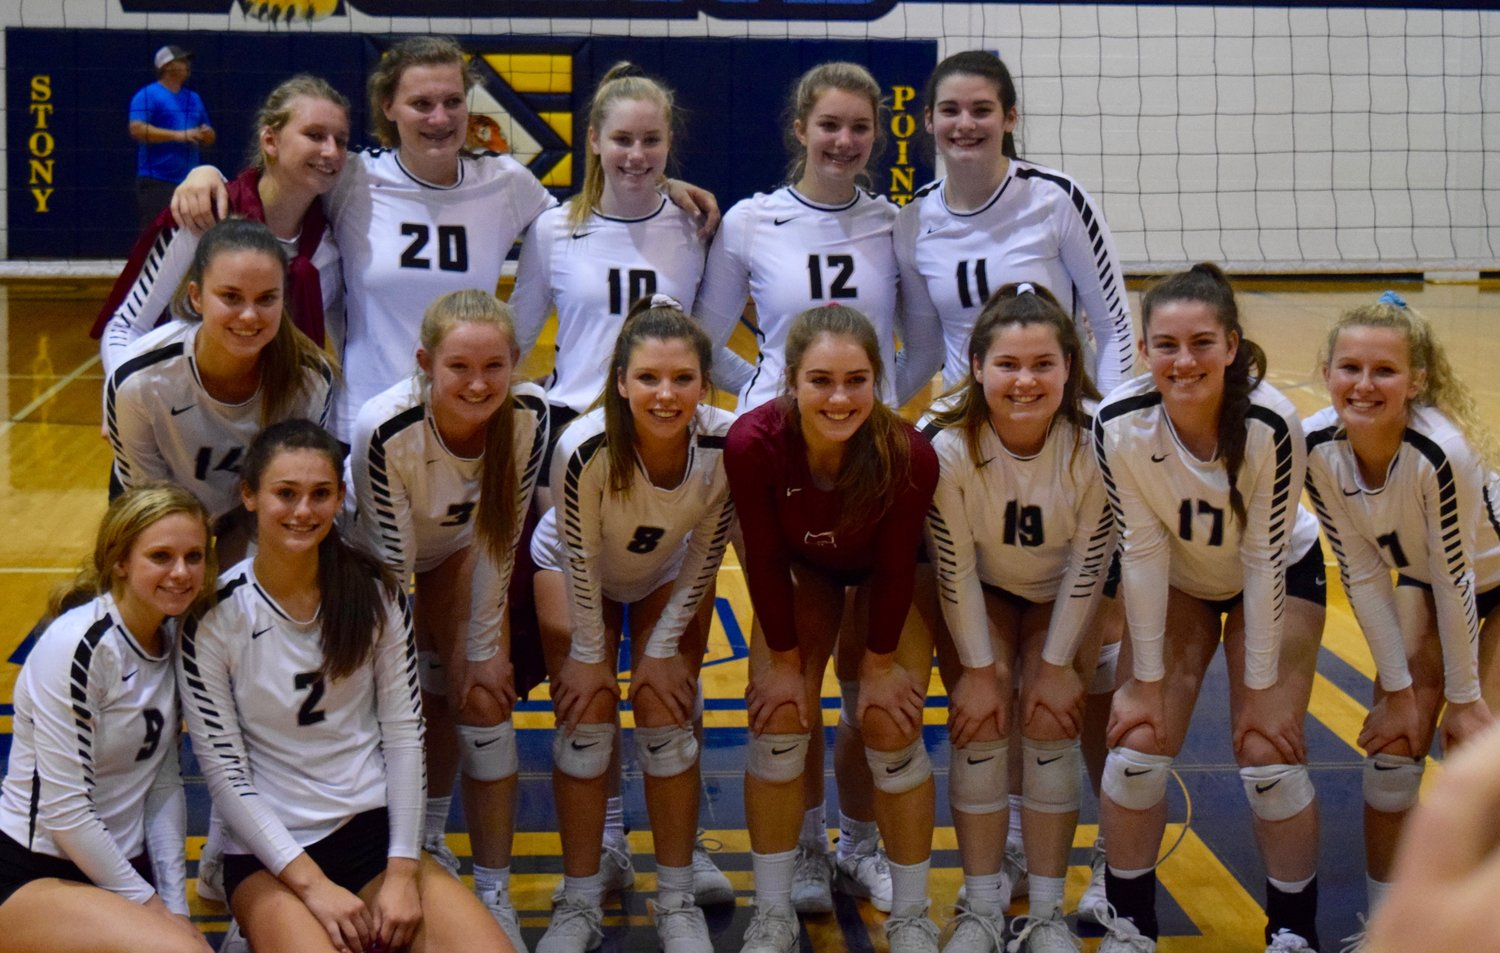 Rouse swept Bastrop 3-0 (25-16, 25-14, 25-23) on Tuesday night to advance to the area round of the playoffs for the third year in a row.